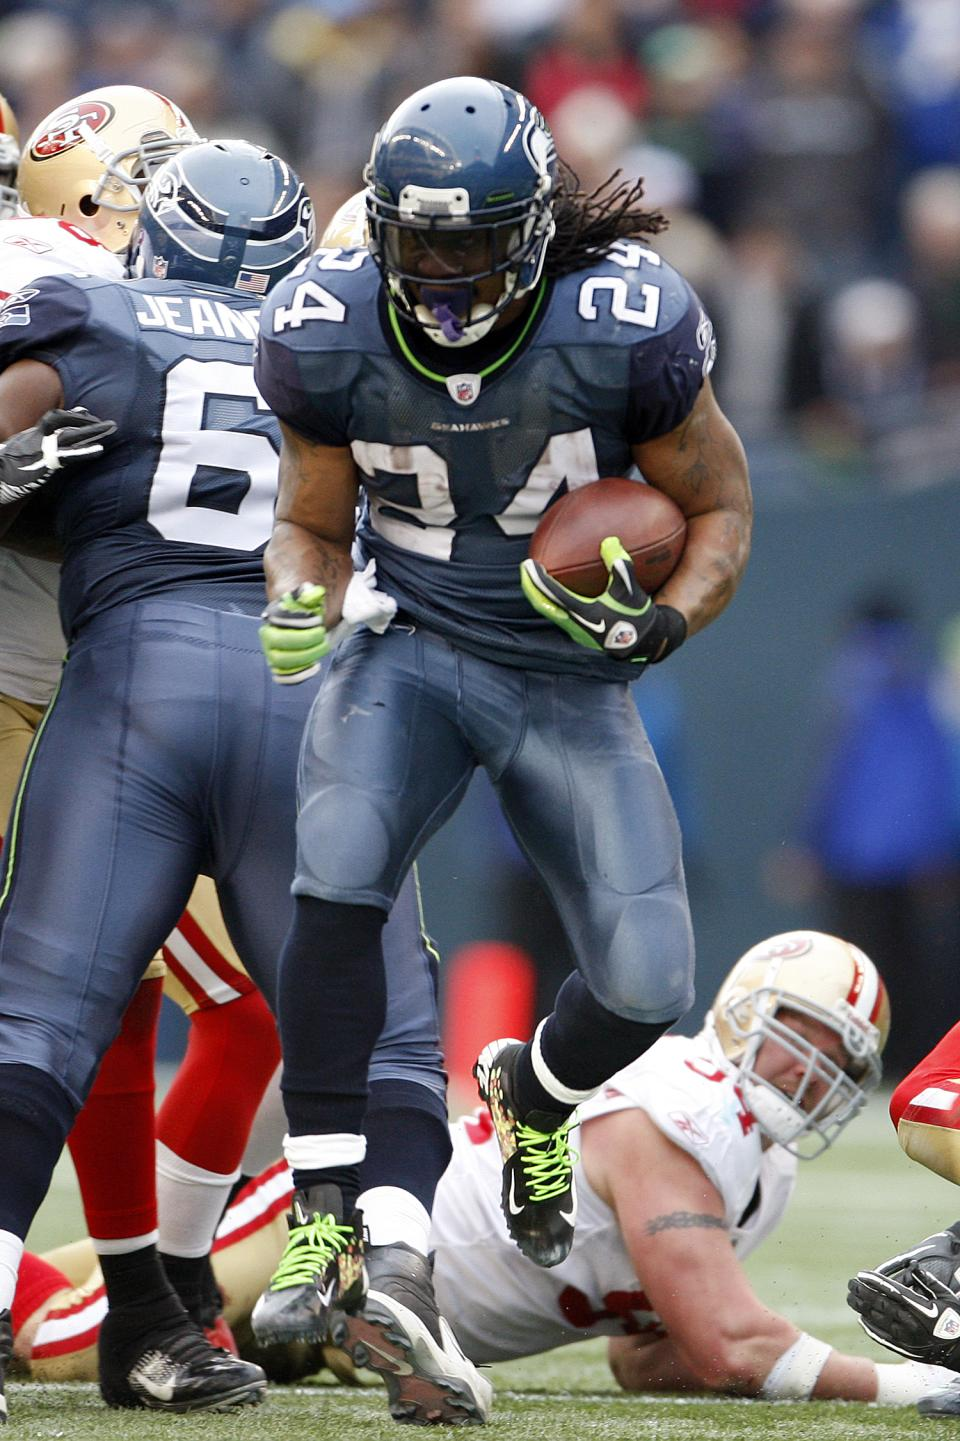 Seattle Seahawks' Marshawn Lynch rushes against the San Francisco 49ers in the first half of an NFL football game, Saturday, Dec. 24, 2011, in Seattle. (AP Photo/Kevin Casey)